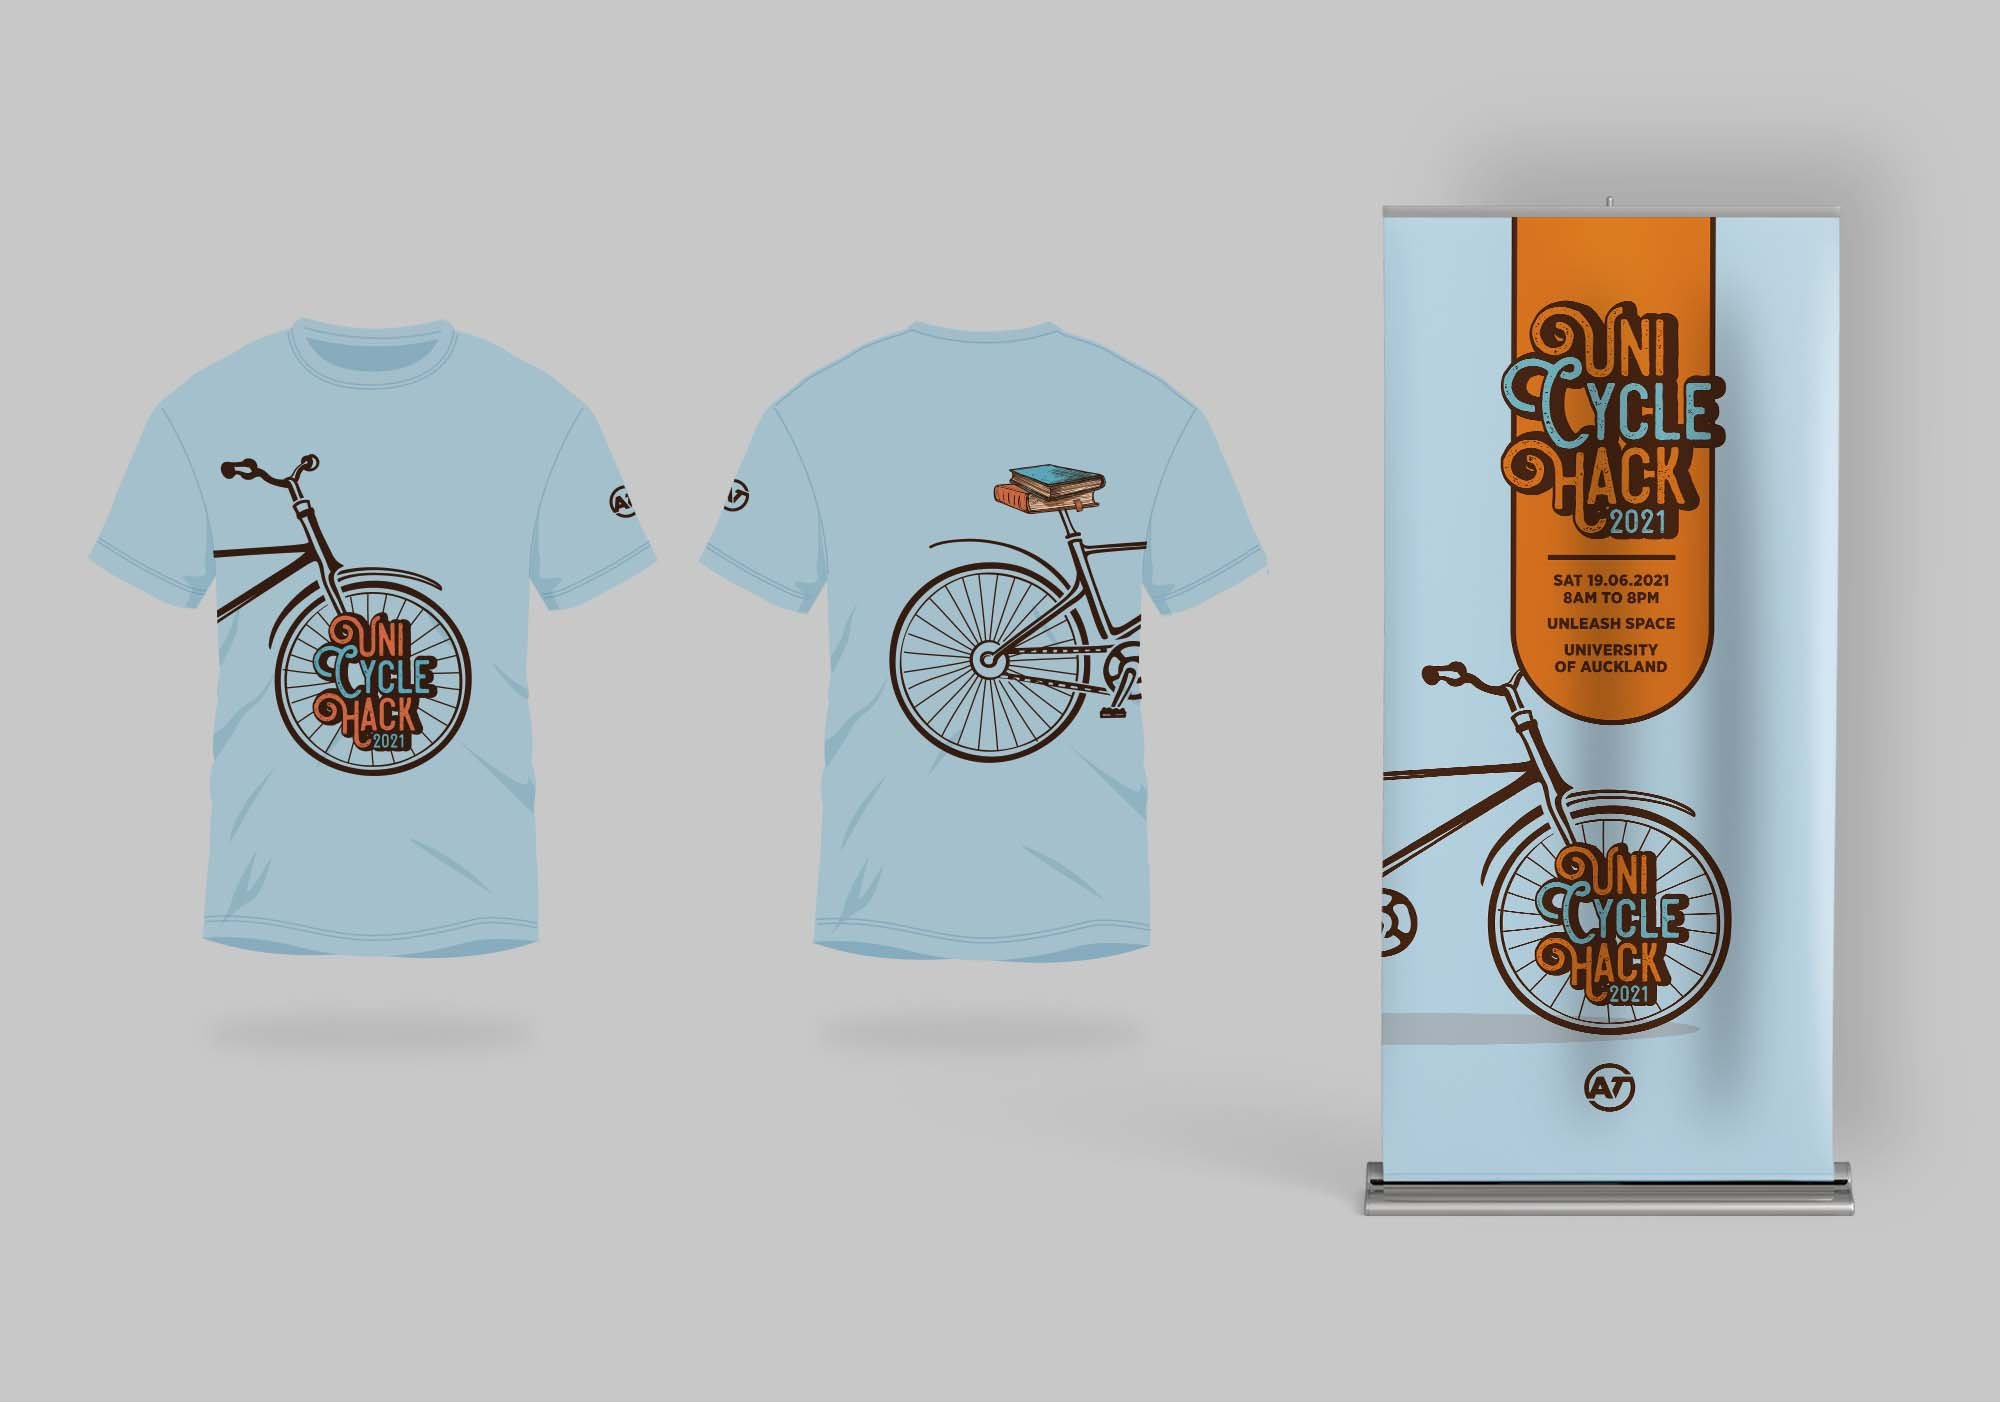 Unicycle-hack-pullup-banner